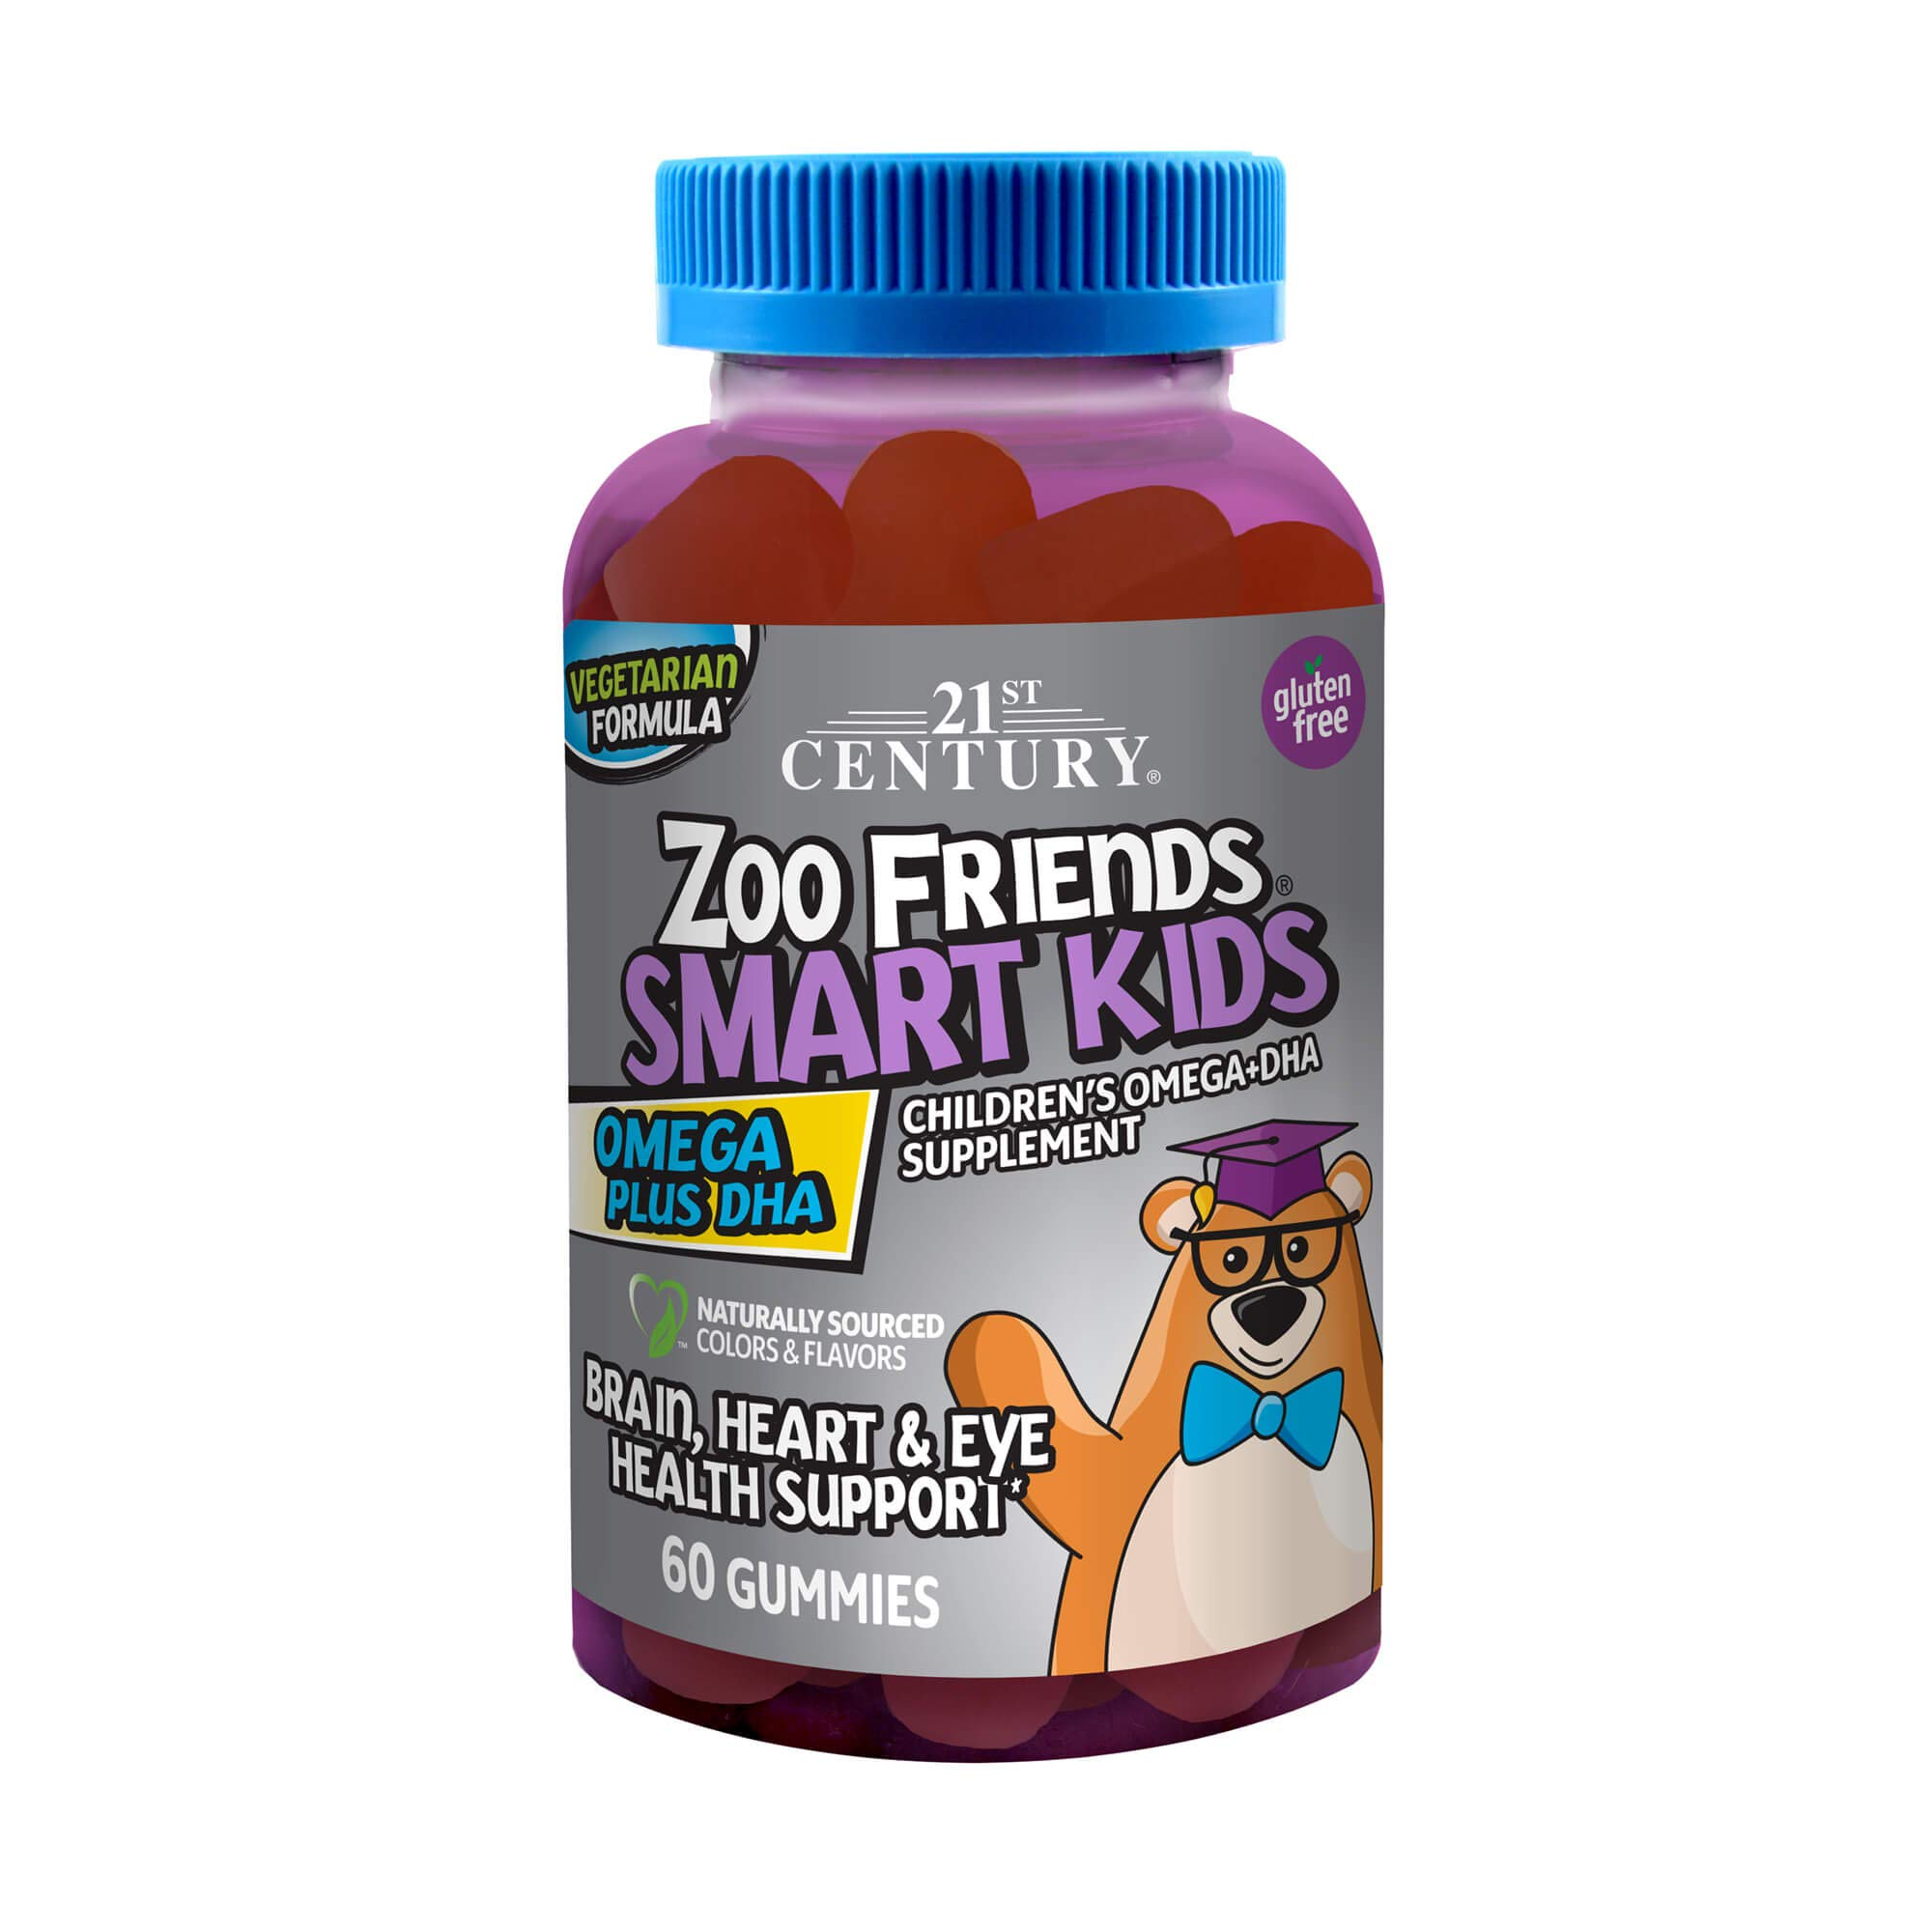 21st Century Zoo Friends Smart Kids Omega Plus DHA Gummies, Orange, Lemon and Cran